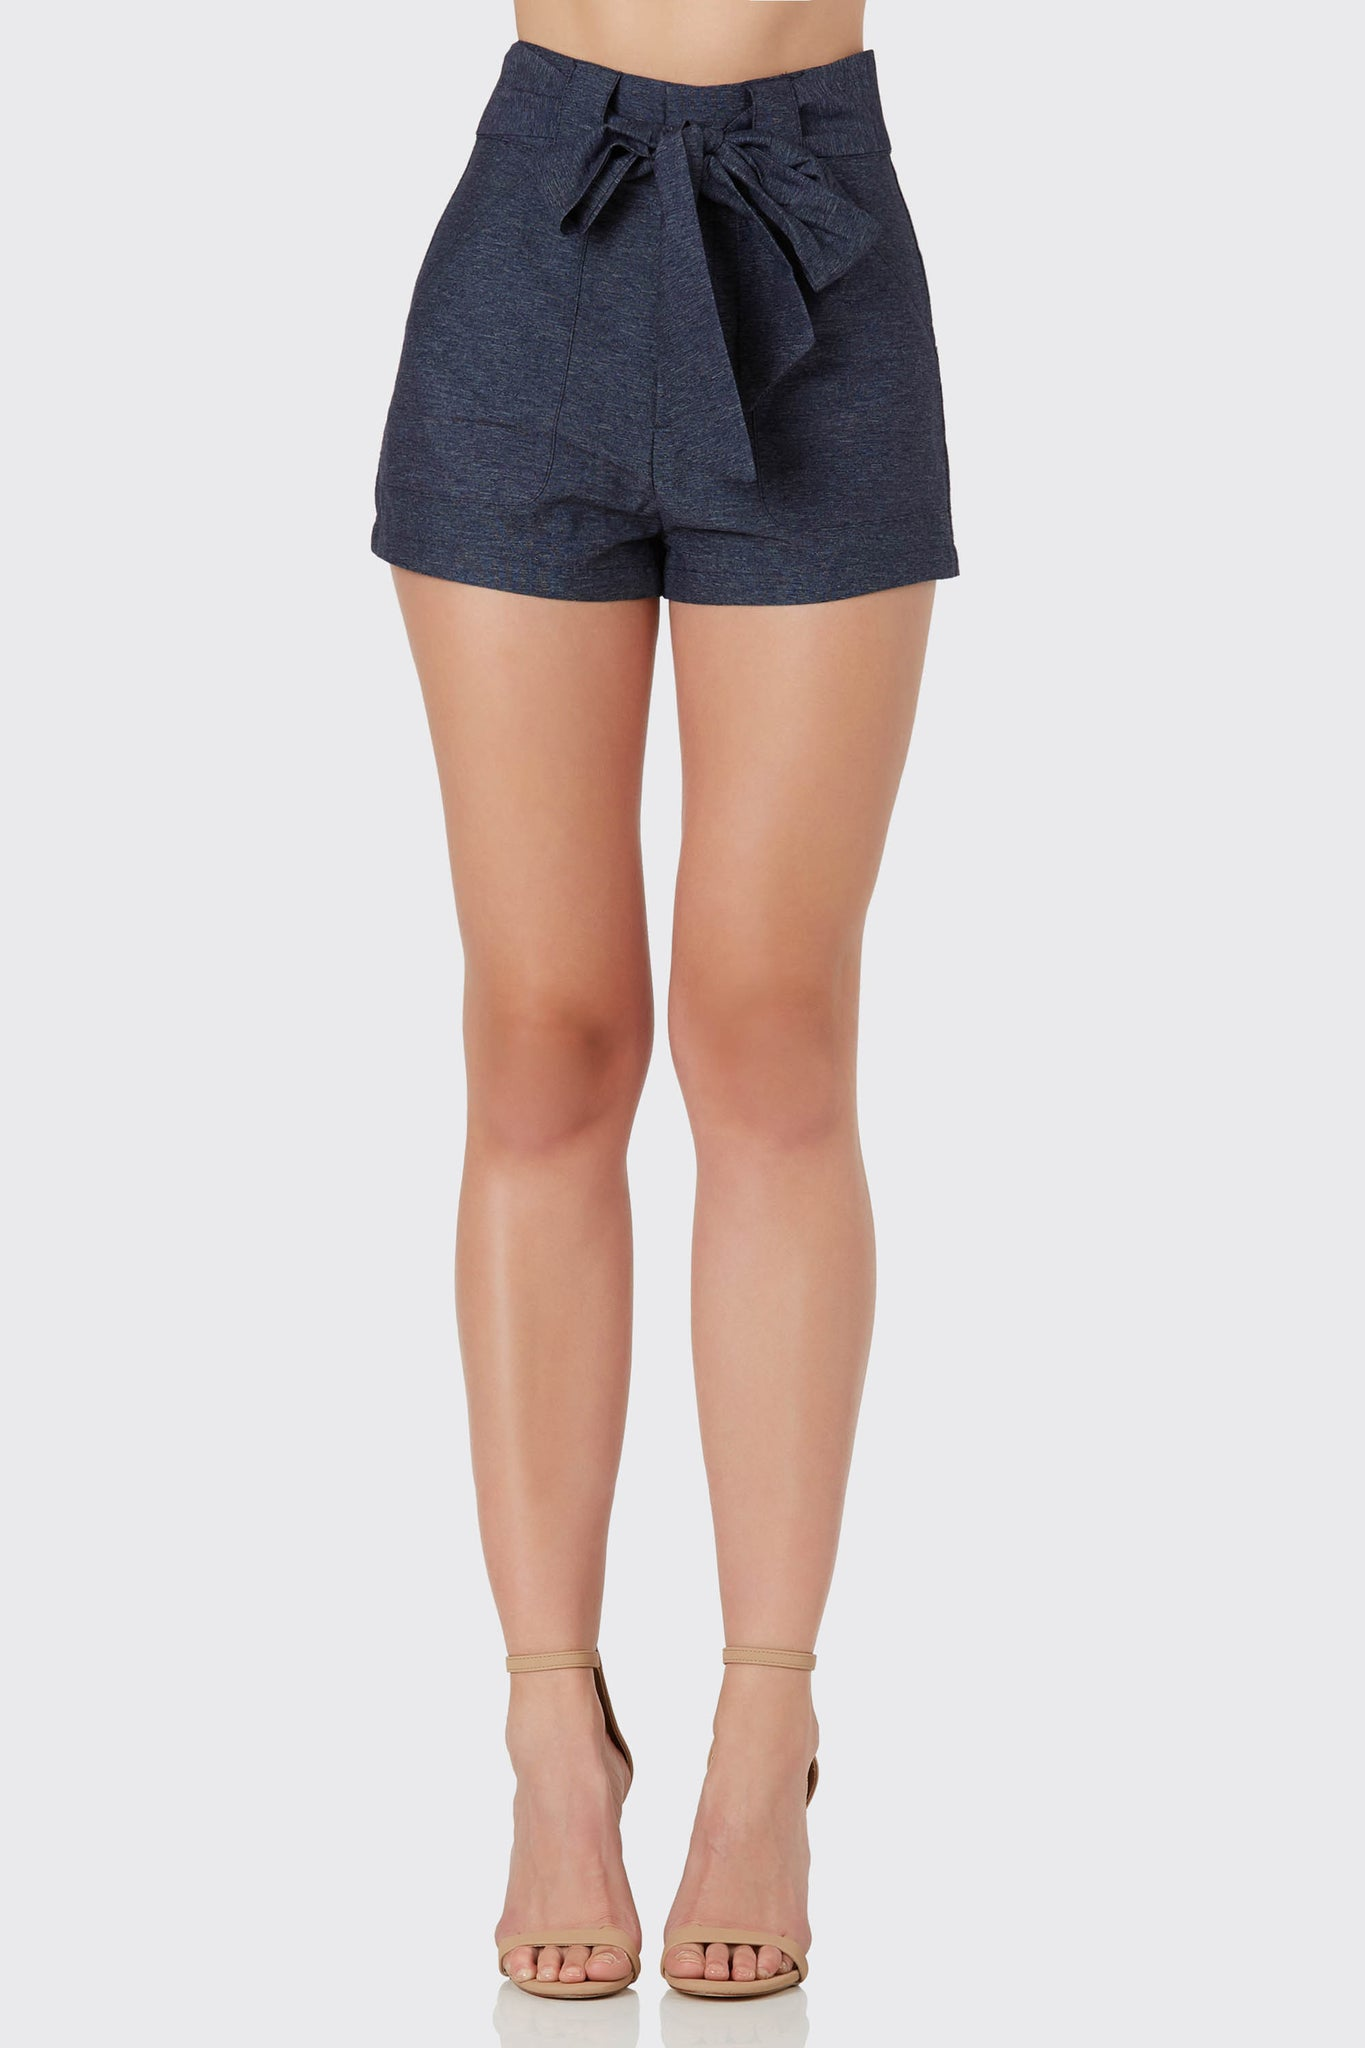 Chic high rise shorts with button zip closure and waist tie for added detail.